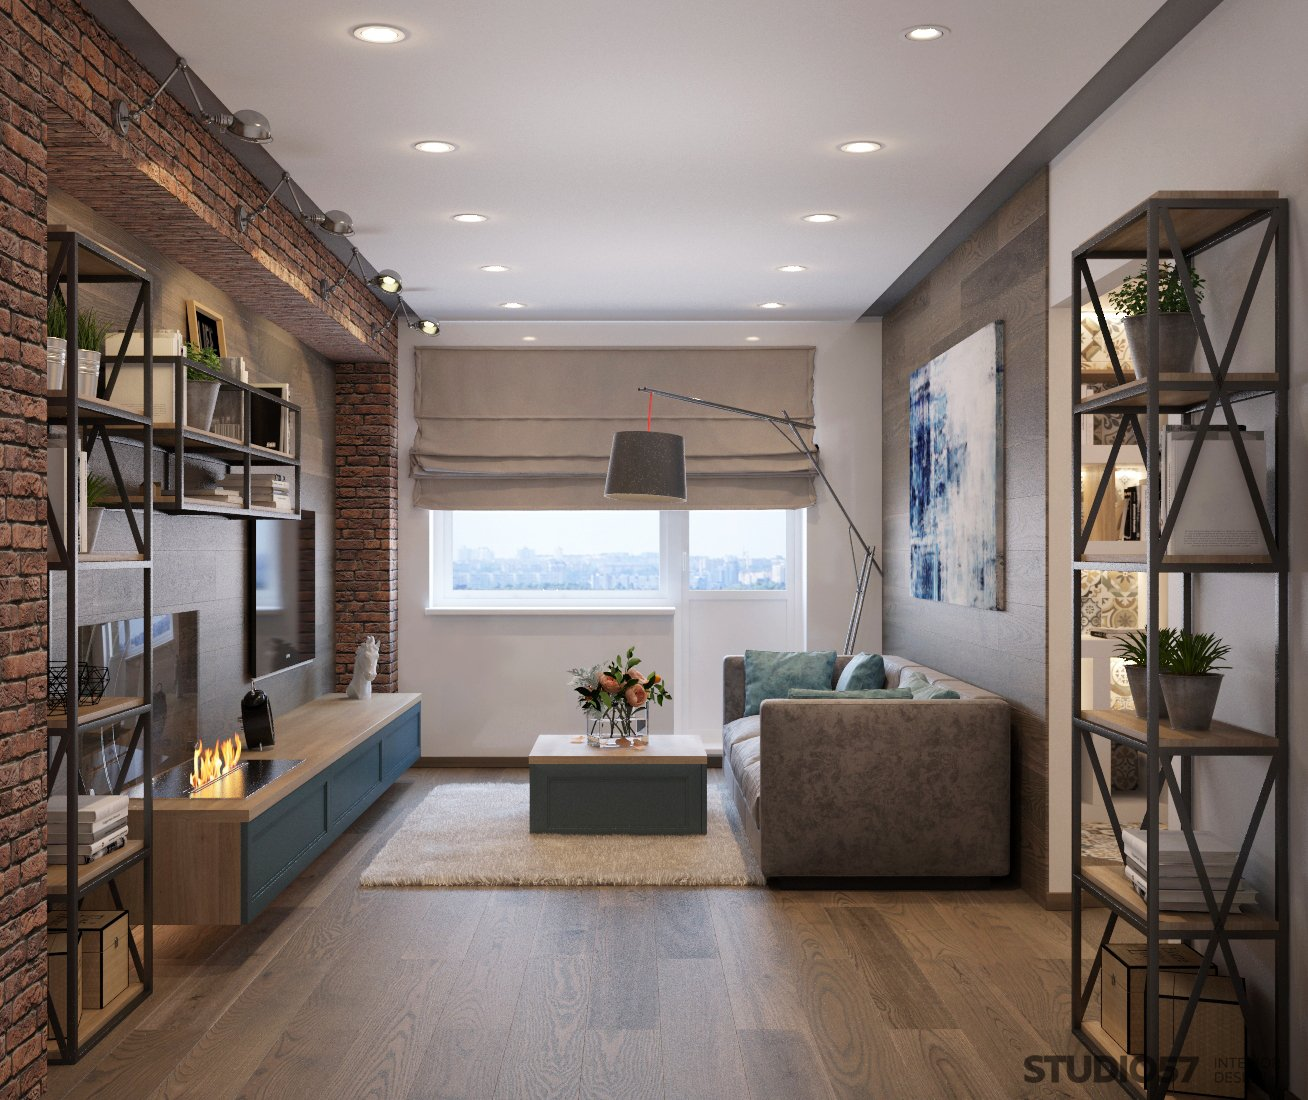 Design of the living room in loft style photo